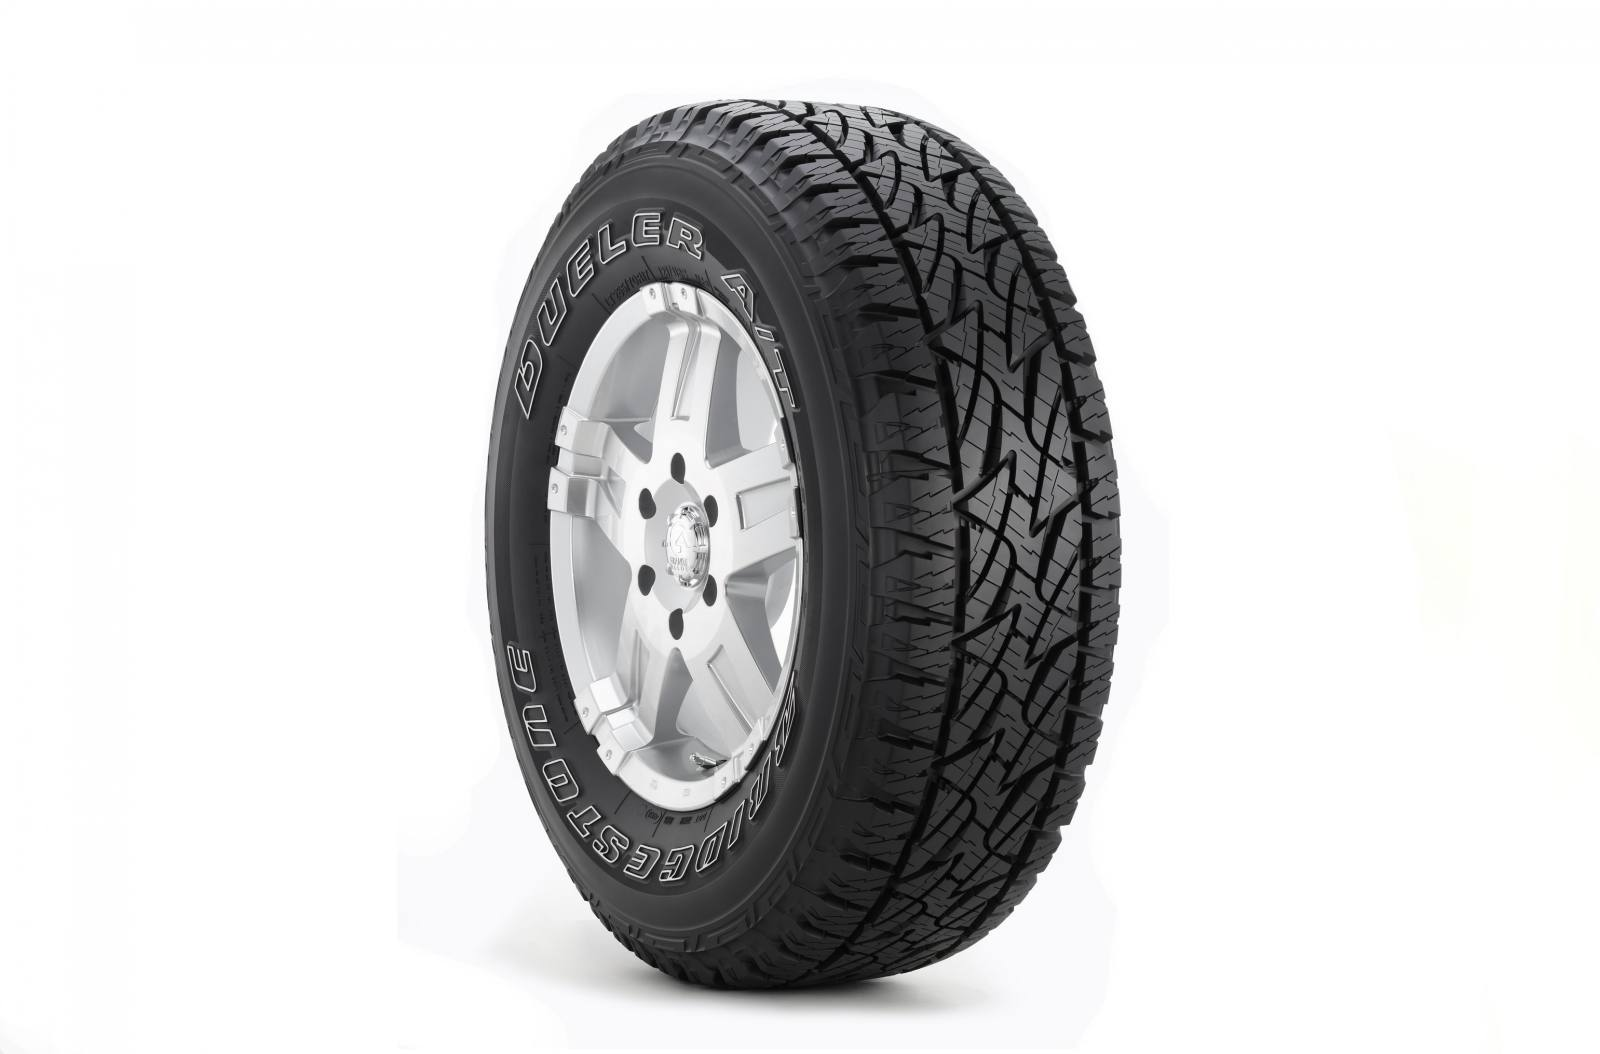 Dueler A/T REVO 2 with Uni-T Tire